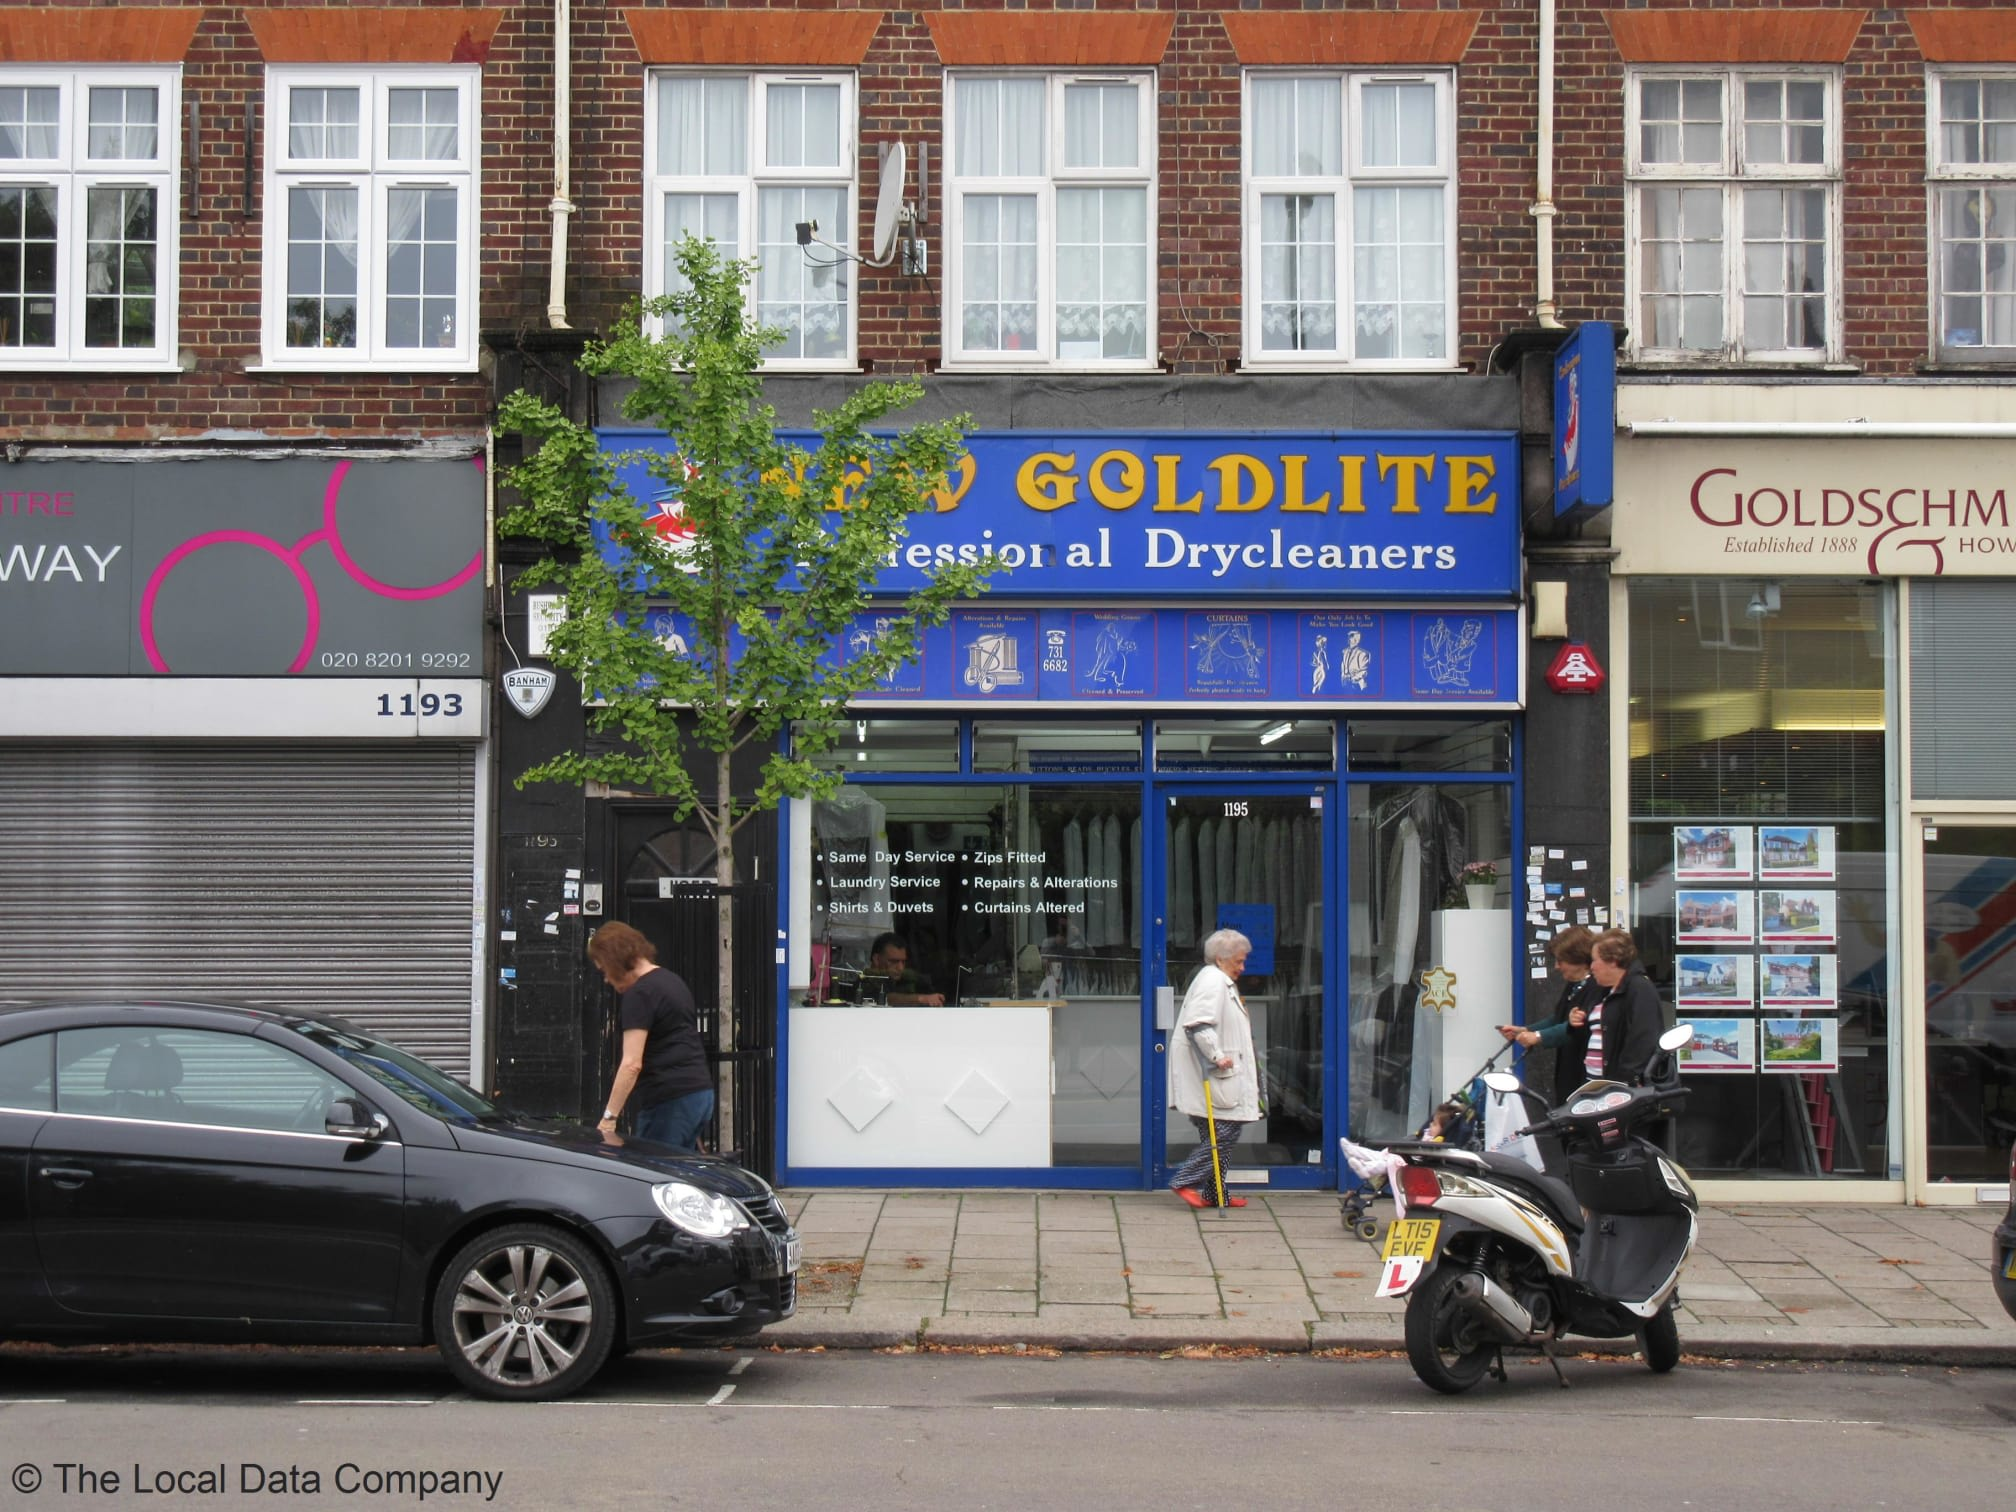 New Goldlite Professional Drycleaners | 1195 Finchley Road, London NW11 0AA | +44 20 8731 6682